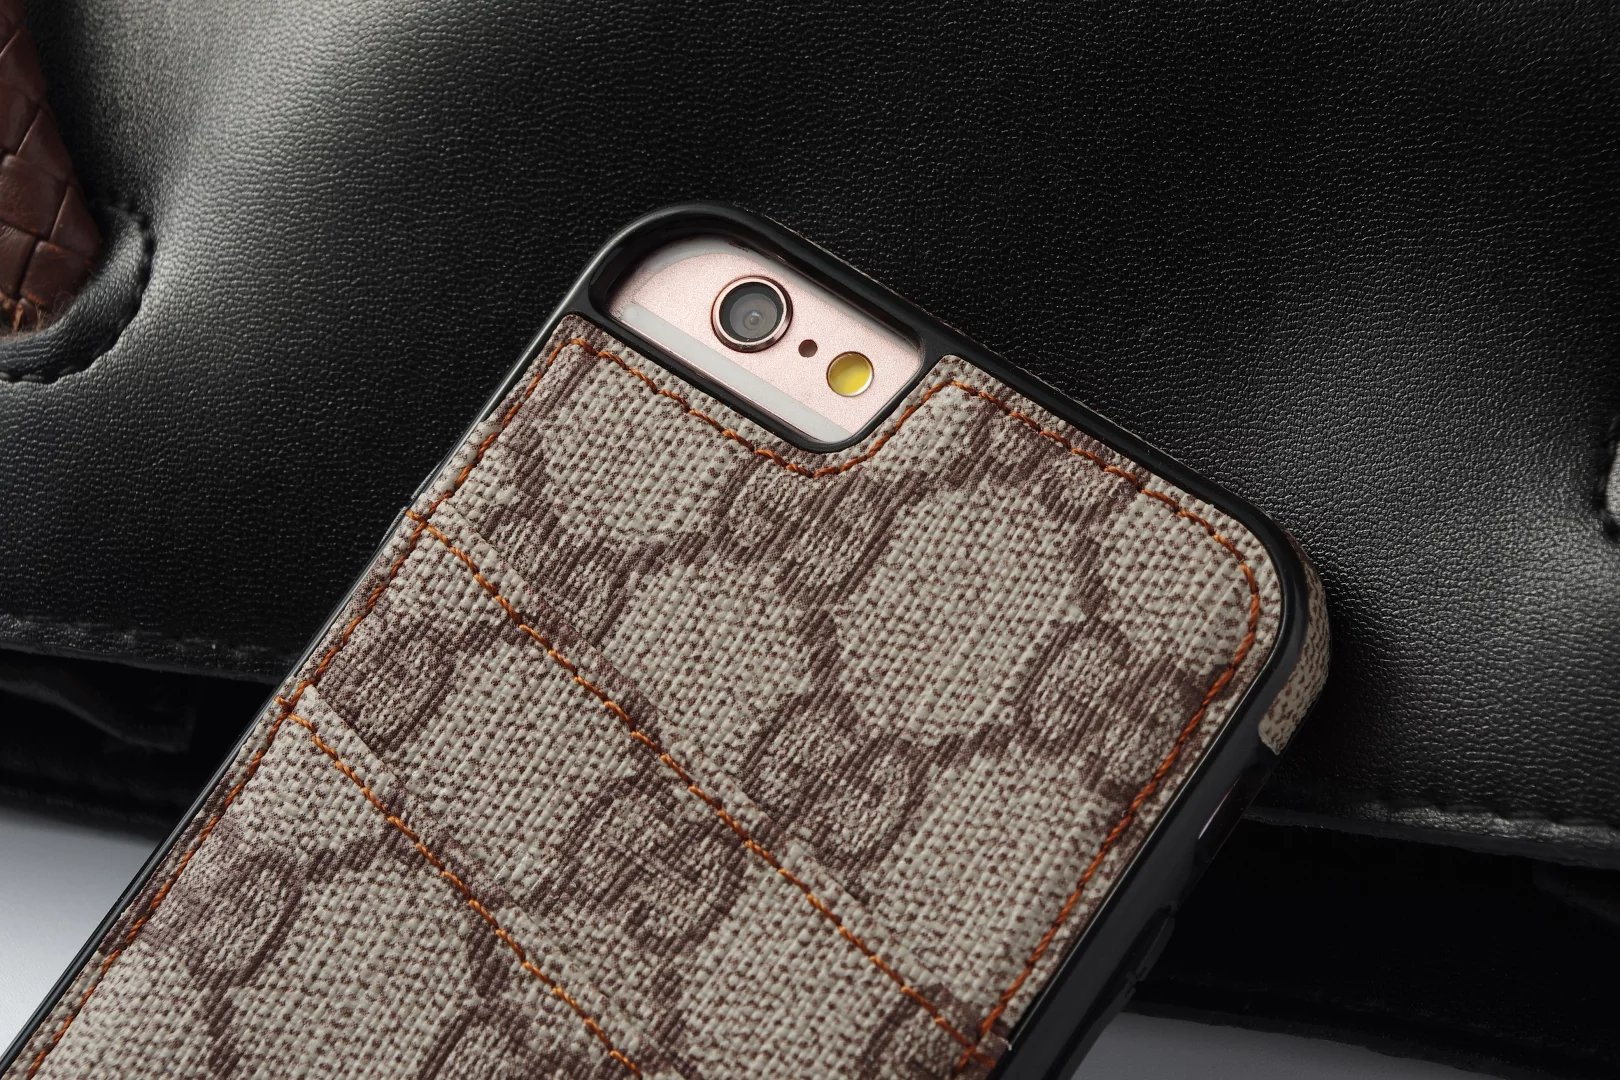 iphone hülle leder iphone hülle kaufen Louis Vuitton iphone6s plus hülle der neue iphone 6 handy deckel 6slber gestalten cover iphone 6s Plus 6slbst gestalten iphone silikonhülle 6slbst gestalten iphone 6s Plus hülle silikon transparent iphone hülle bedrucken las6sn